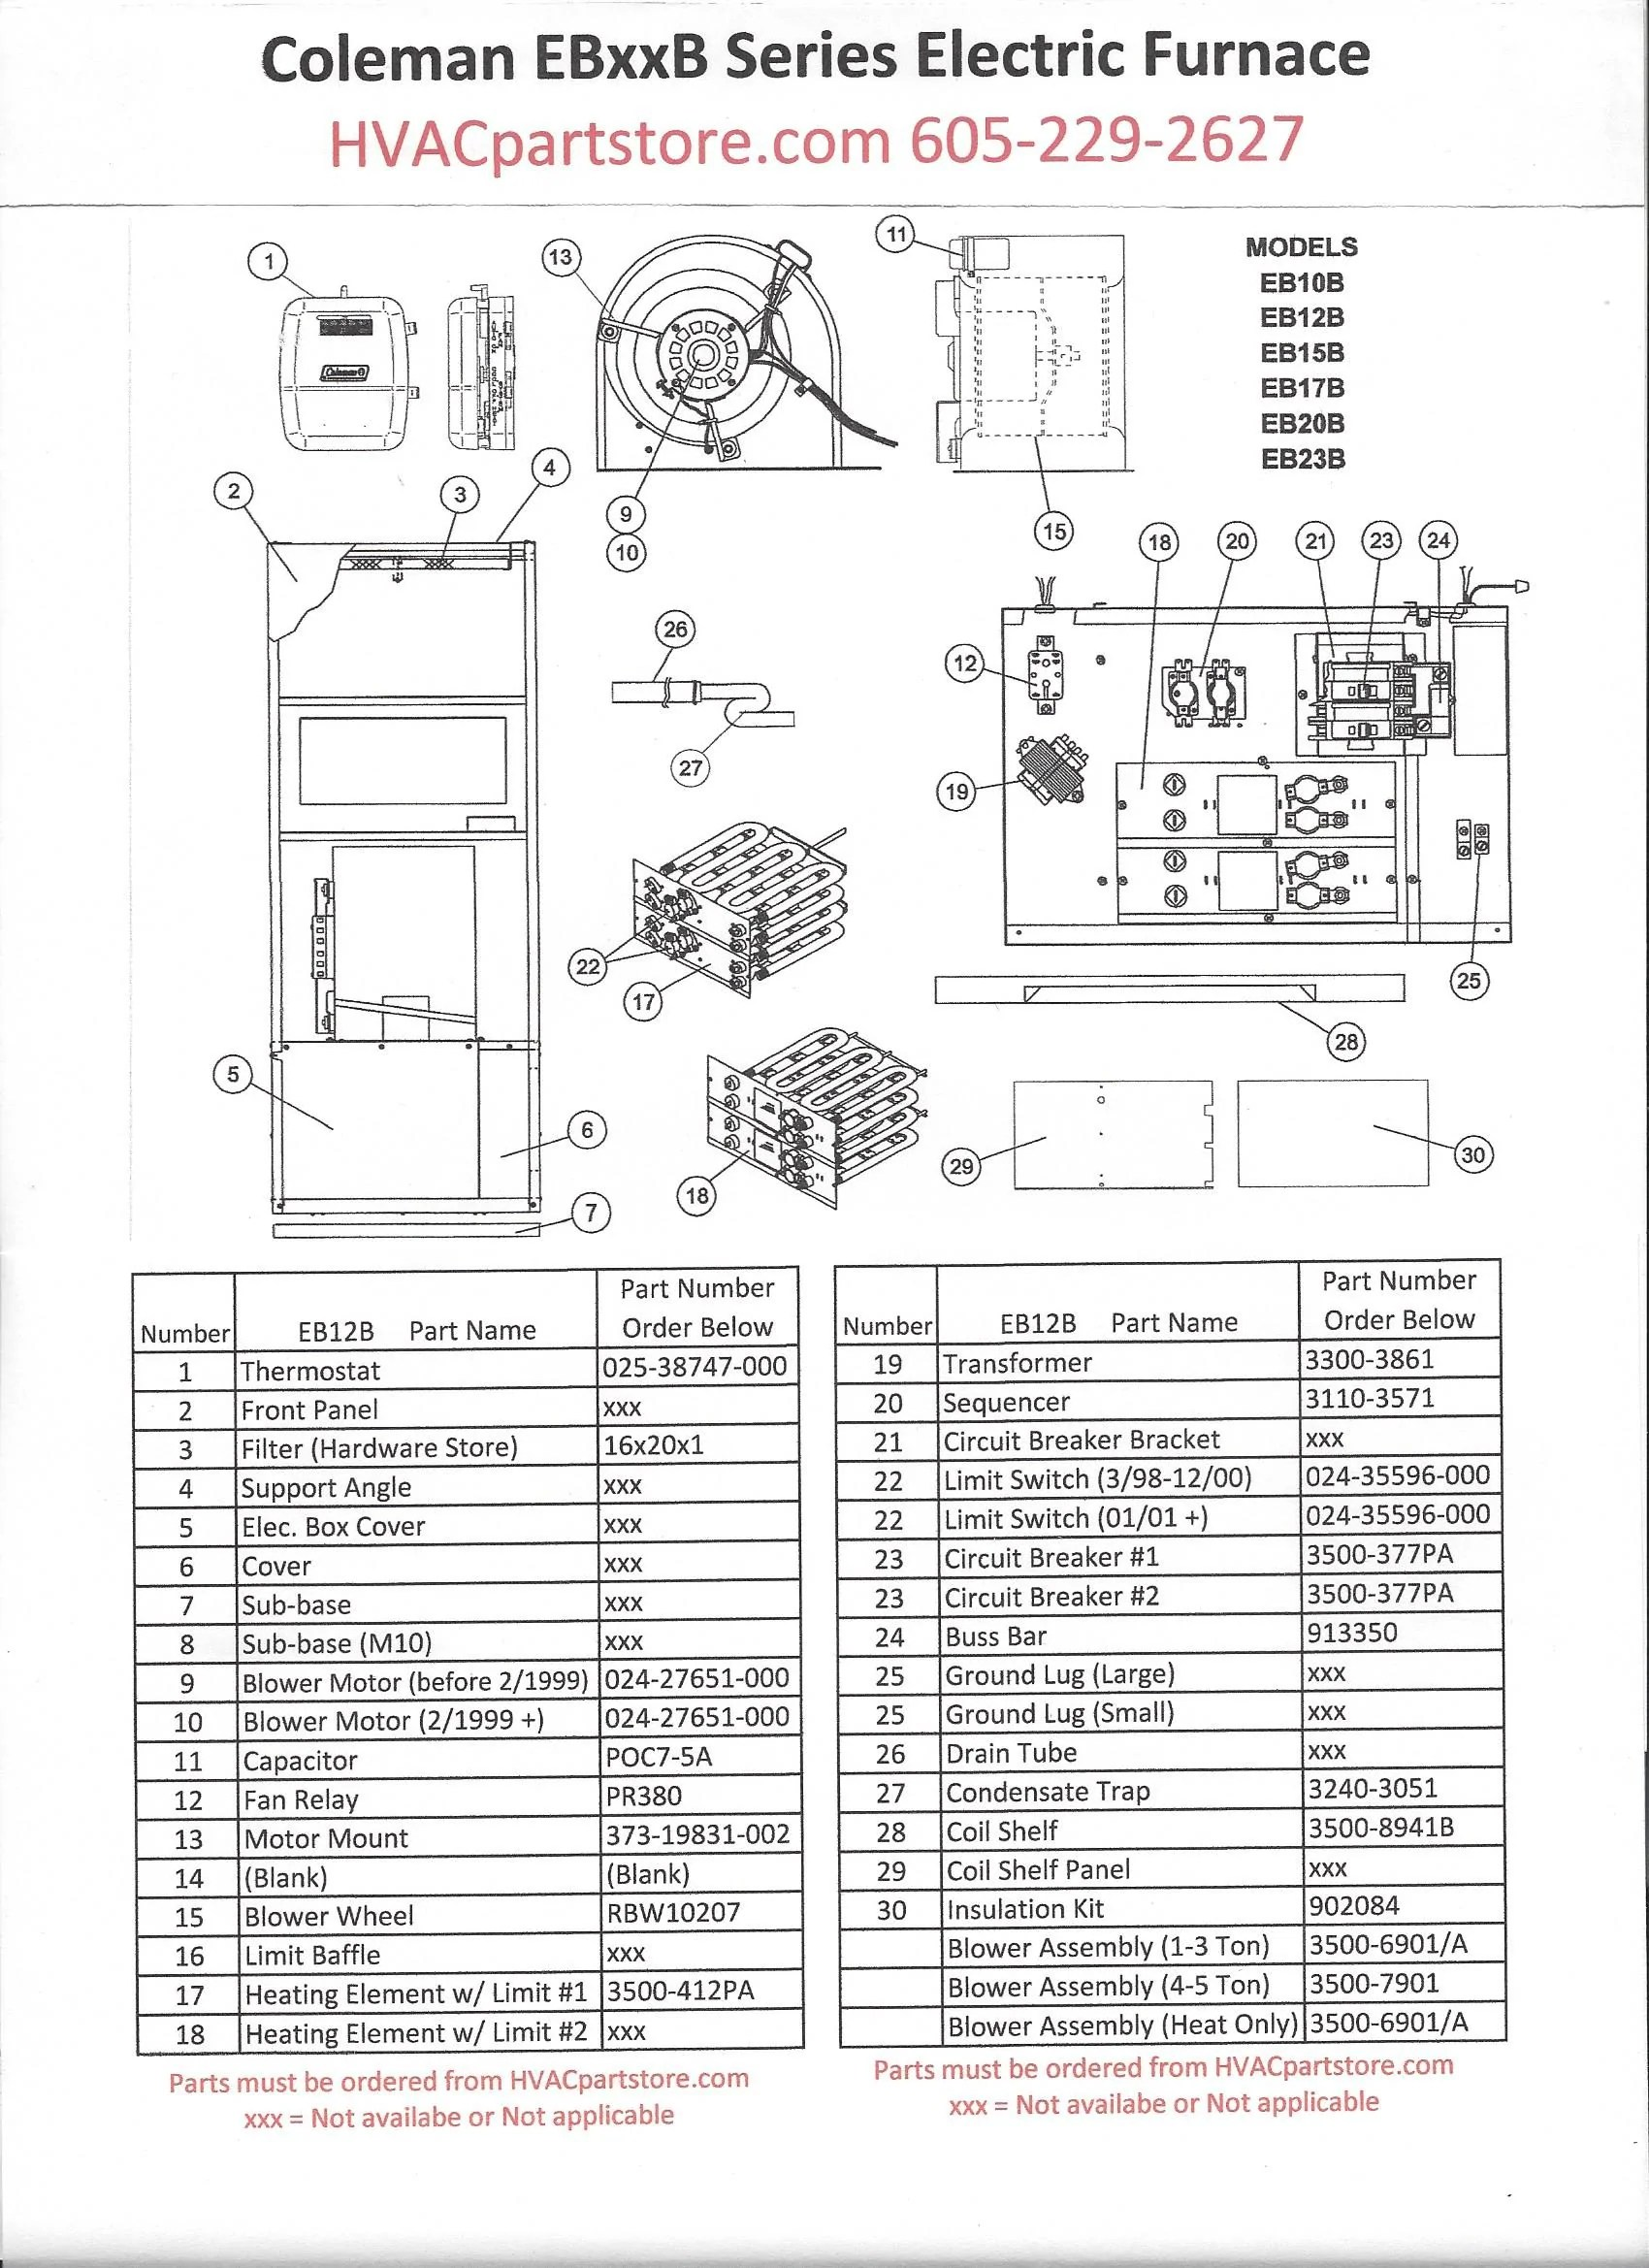 amana furnace blower wiring diagram harley turns petrol into noise eb12b free engine image for user manual